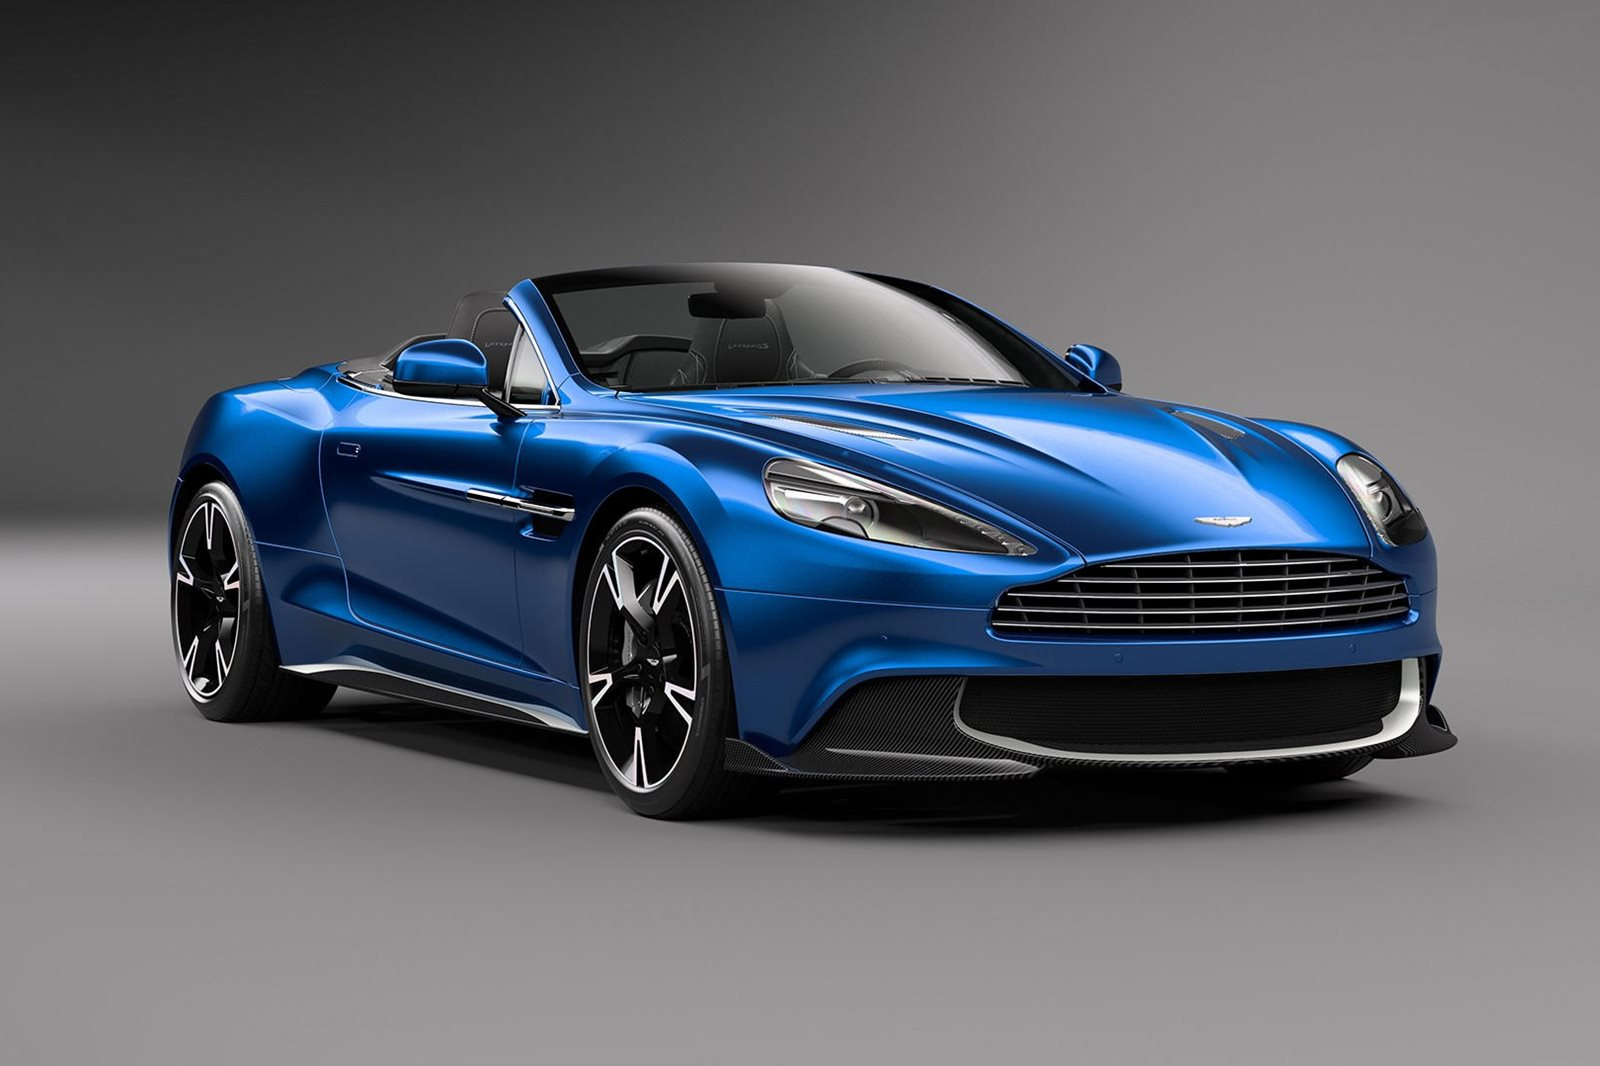 Aston Martin Vanquish S Volante Review Trims Specs And Price - Aston martin vanquish gt price